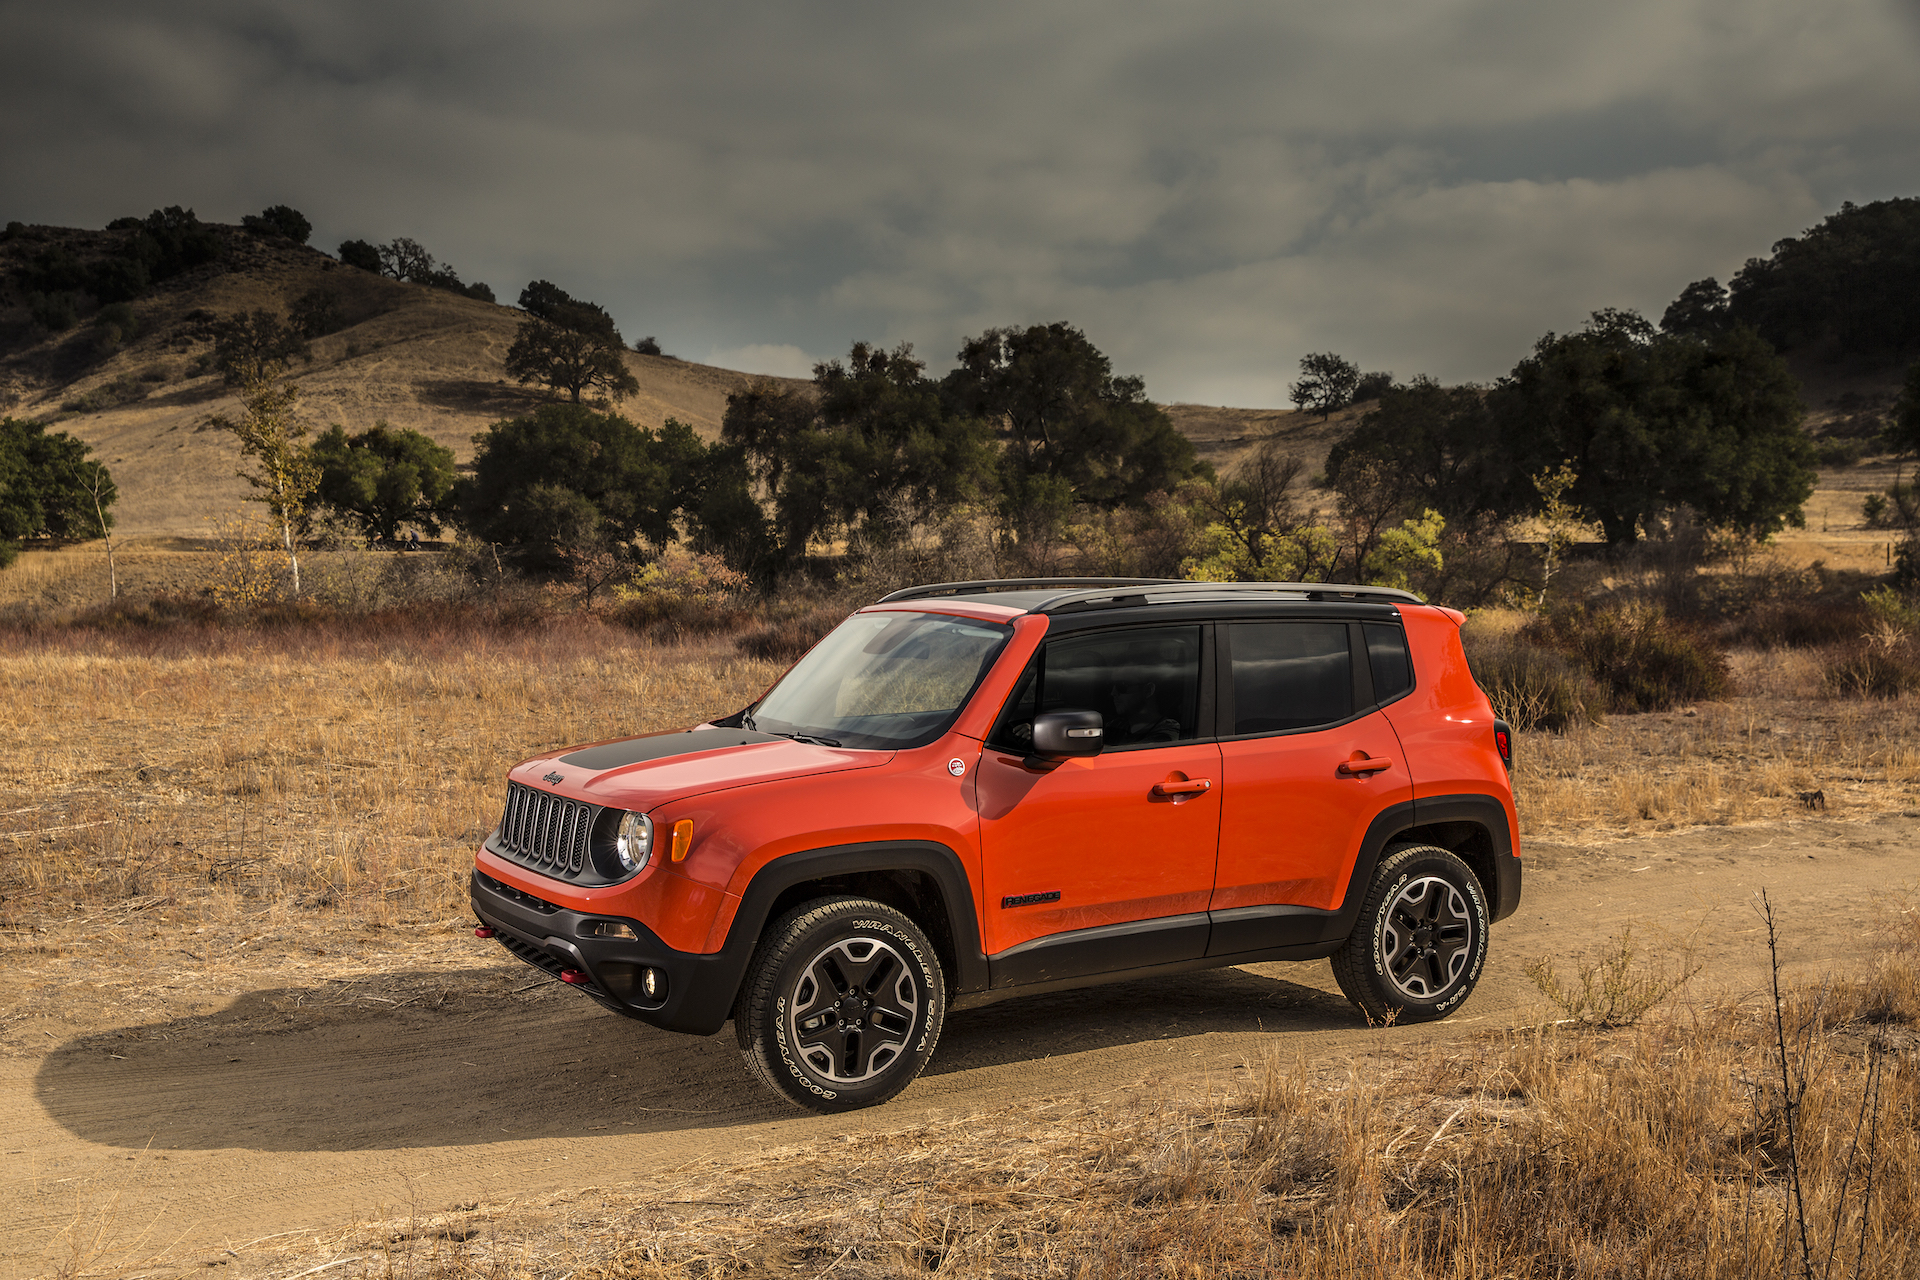 Jeep Renegade Trailhawk For Sale >> 2017 Jeep Renegade vs. 2017 Chevrolet Trax: Compare Cars